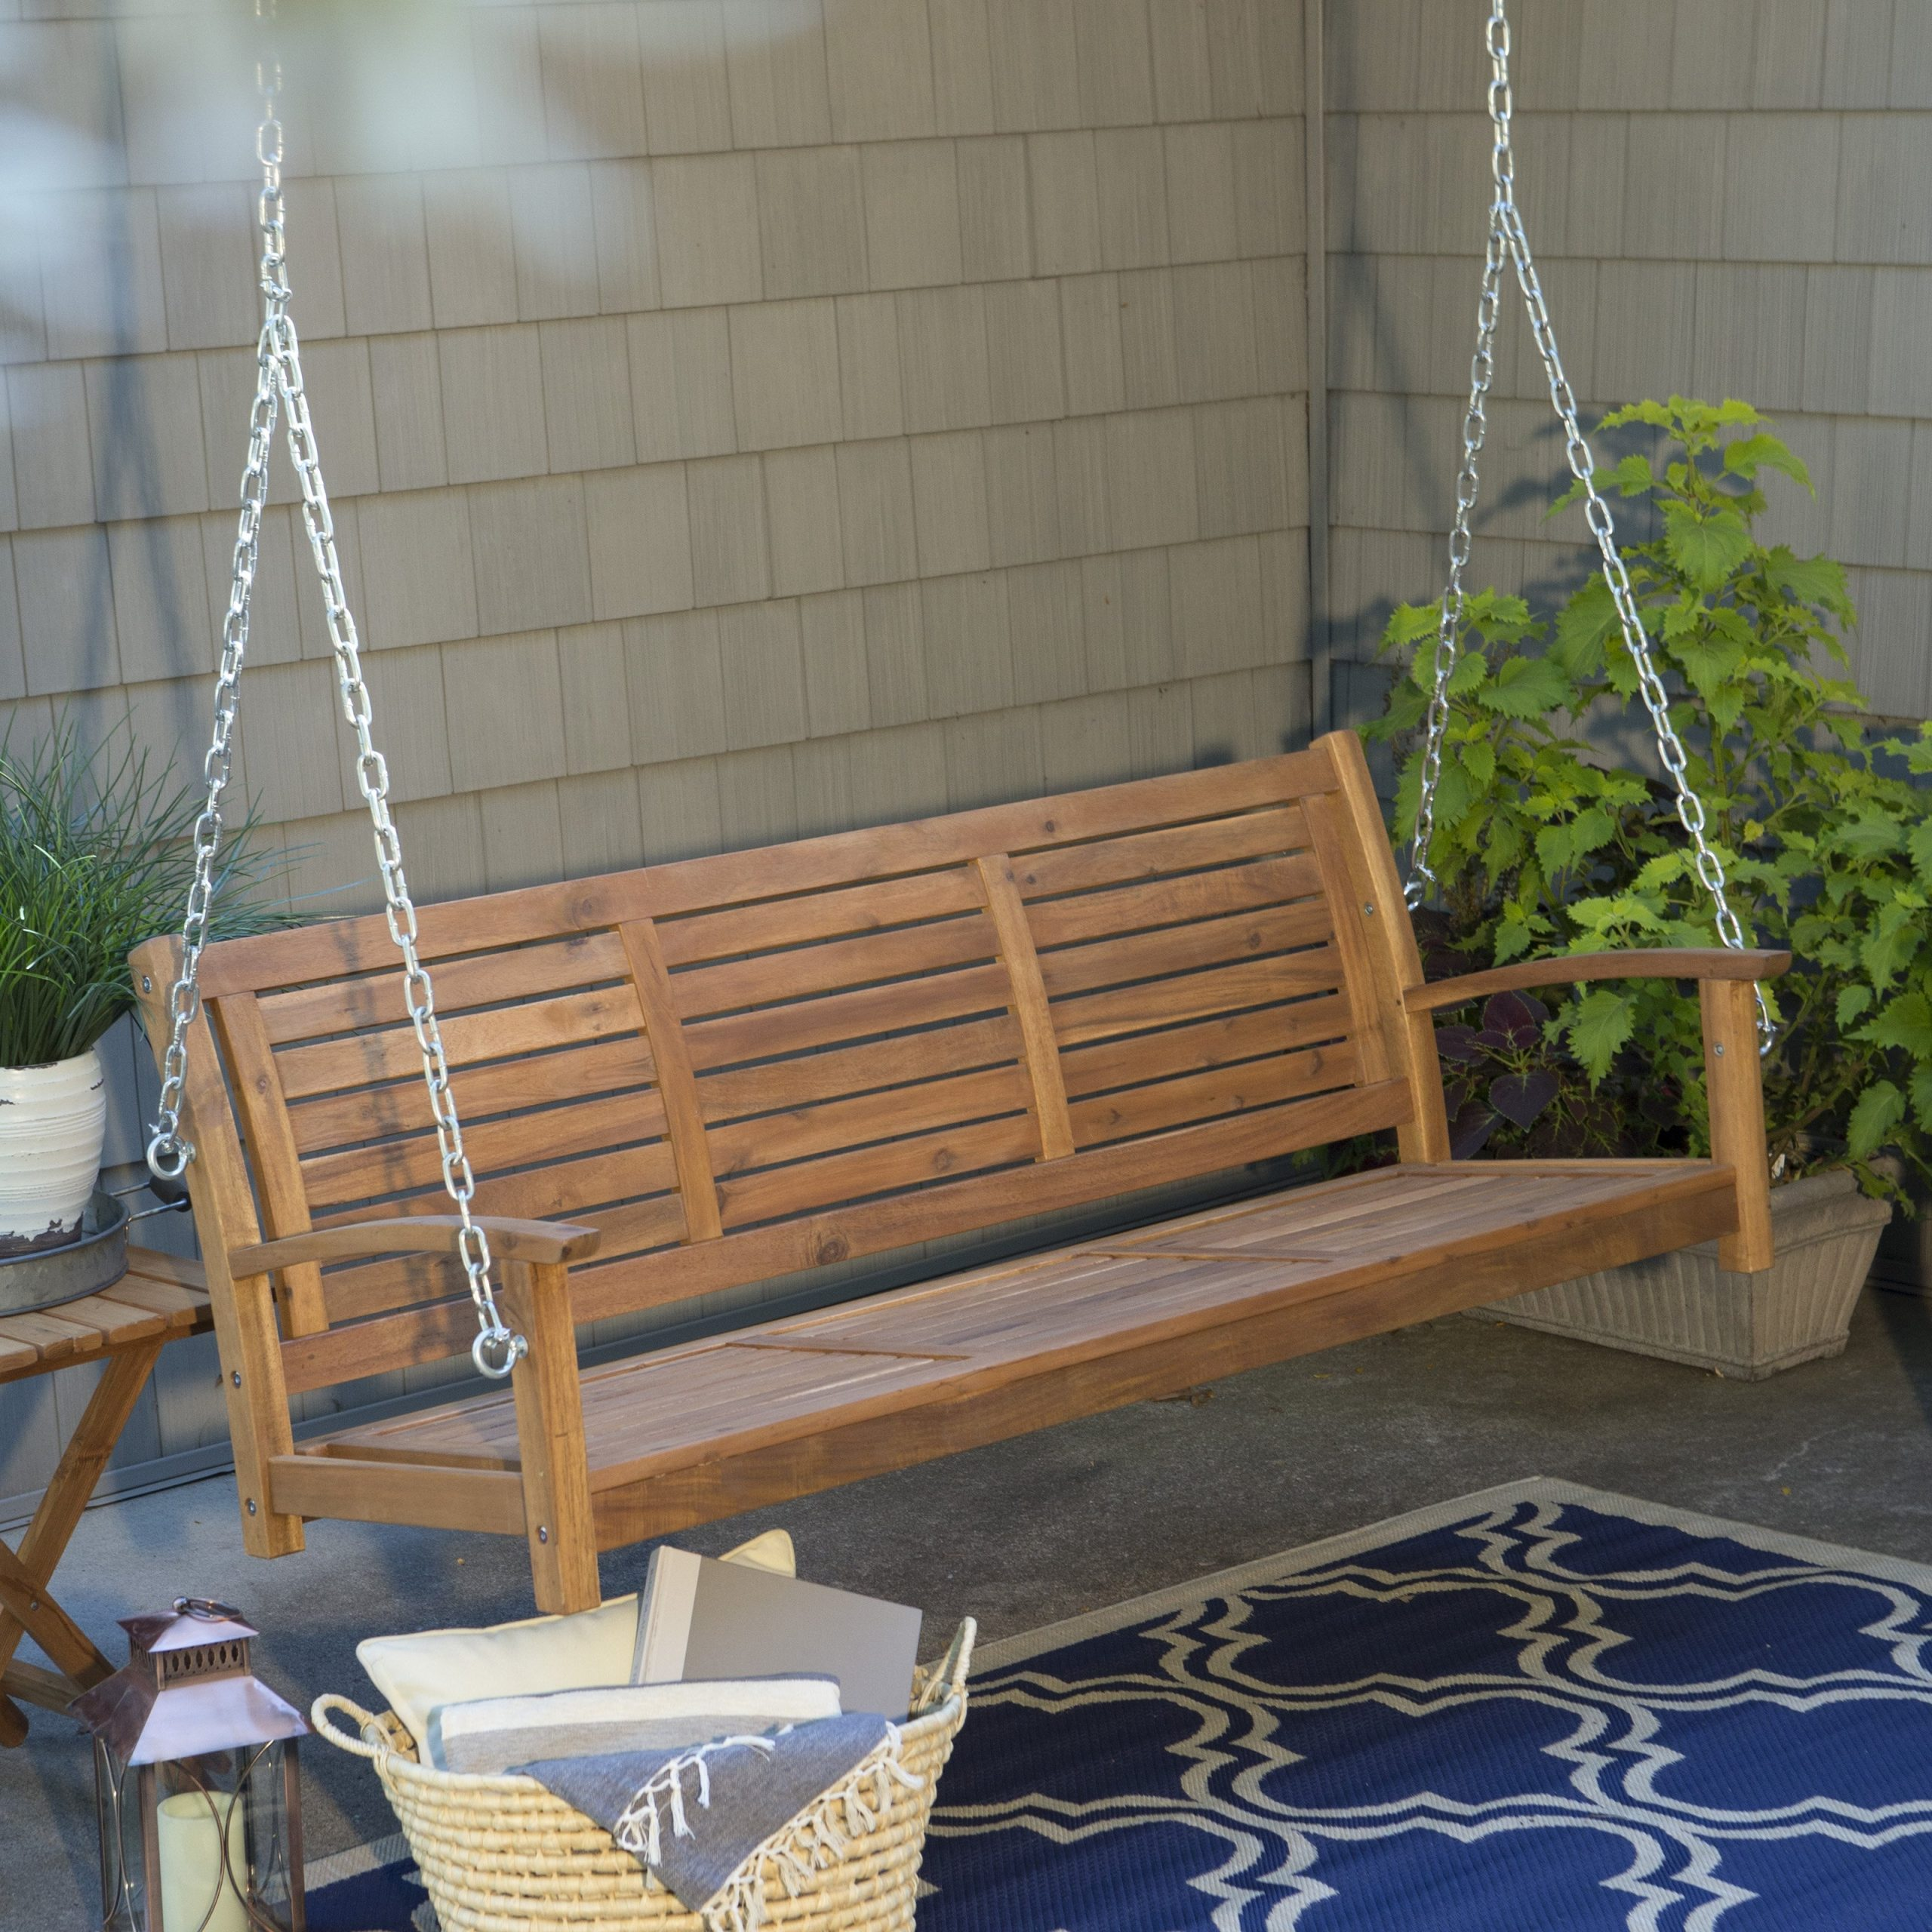 Hanging Chain For Porch Swing Throughout Porch Swings With Chain (View 8 of 25)